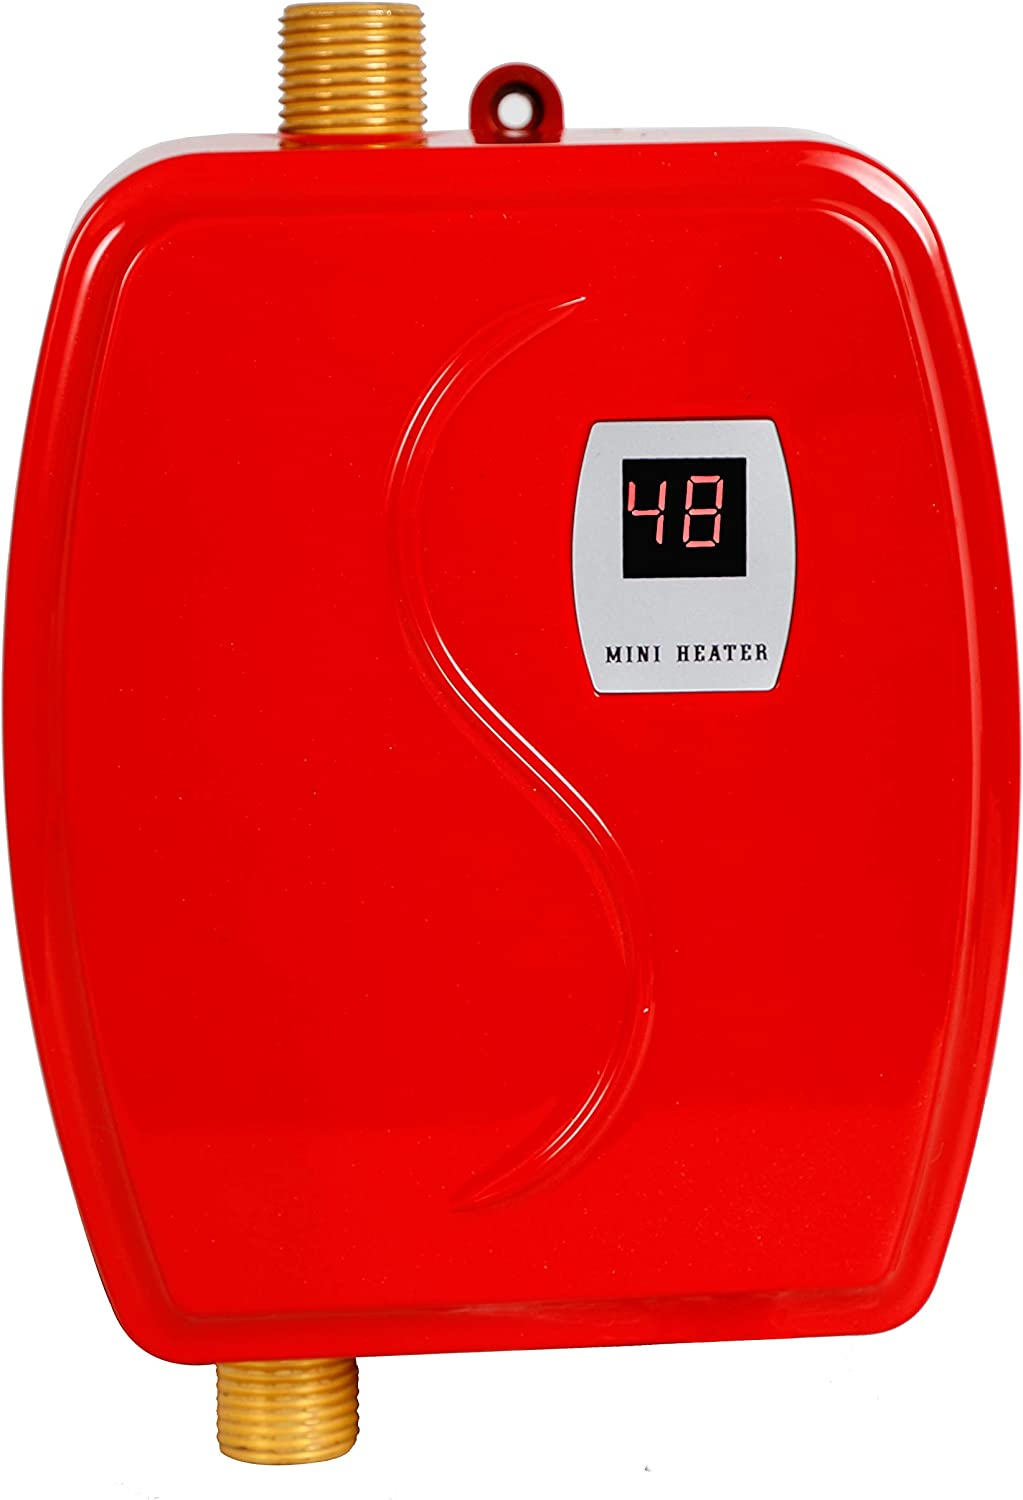 Gdrasuya10 3.0 KW 110V Mini Instant Electric Tankless Hot Water Heater for Shower Kitchen Washing Faucet Home Bathroom Heating System (Red)